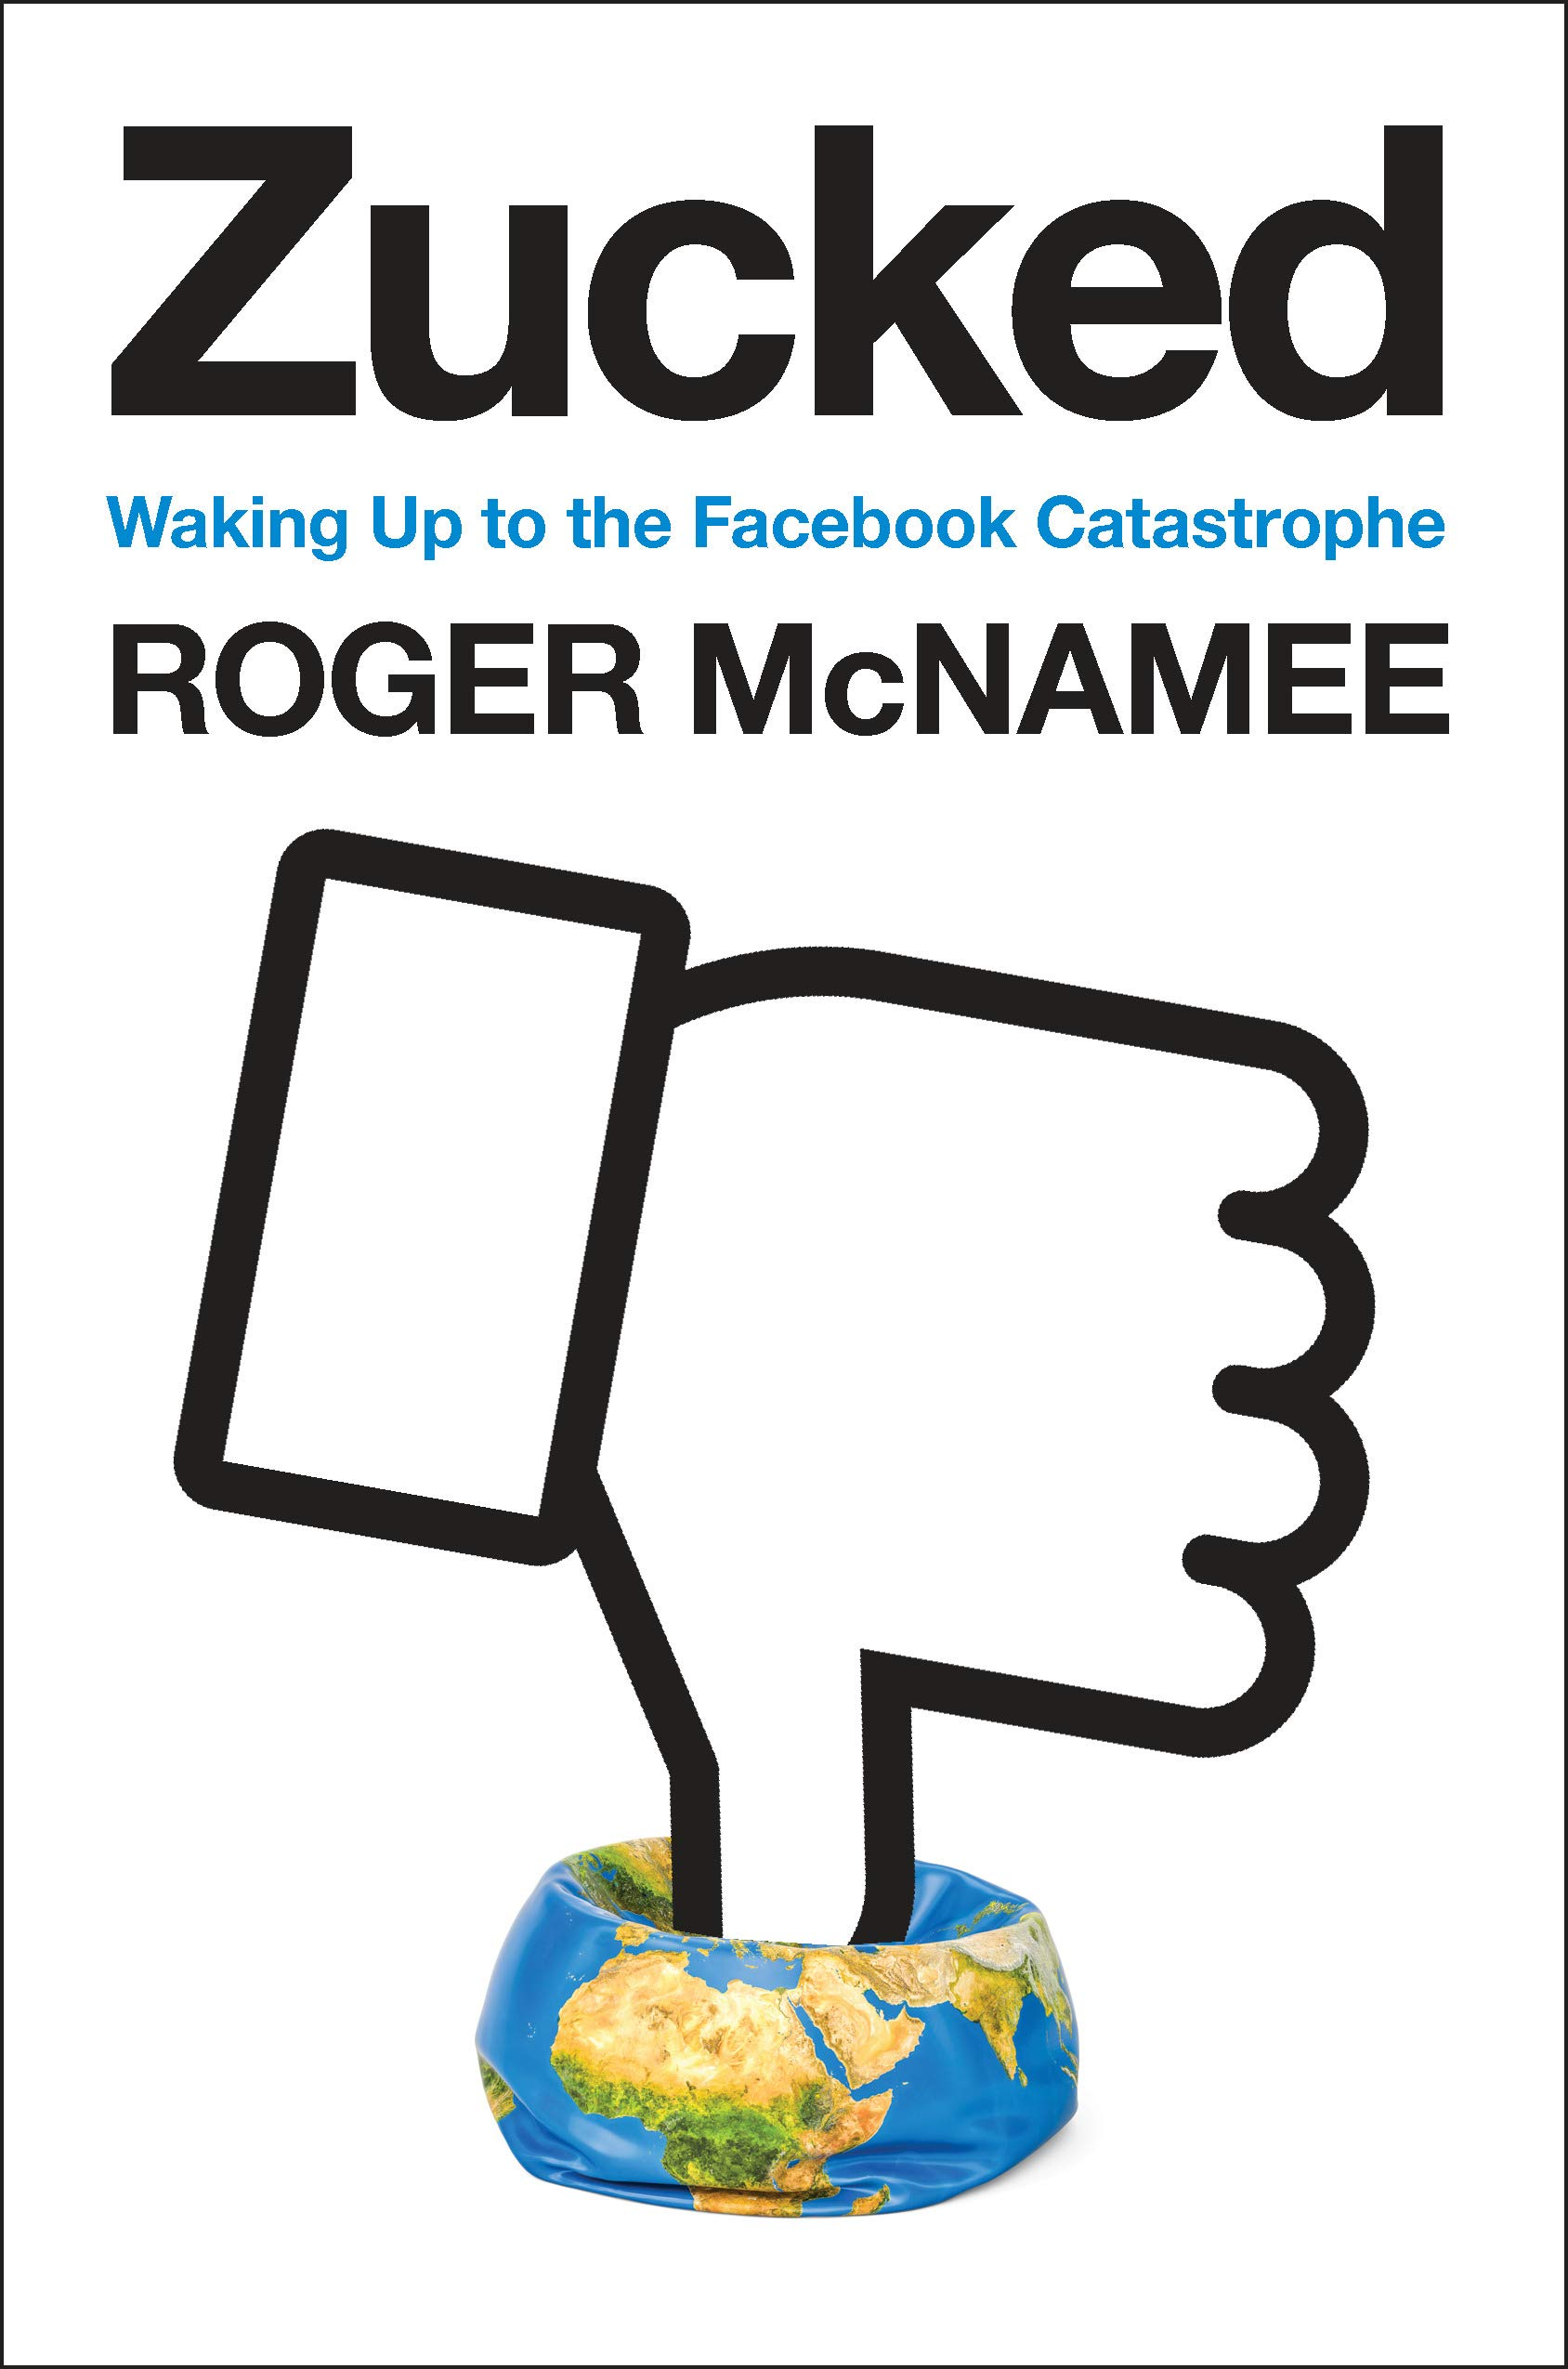 zucked waking up to the facebook catastrophe by roger mcnamee.jpg